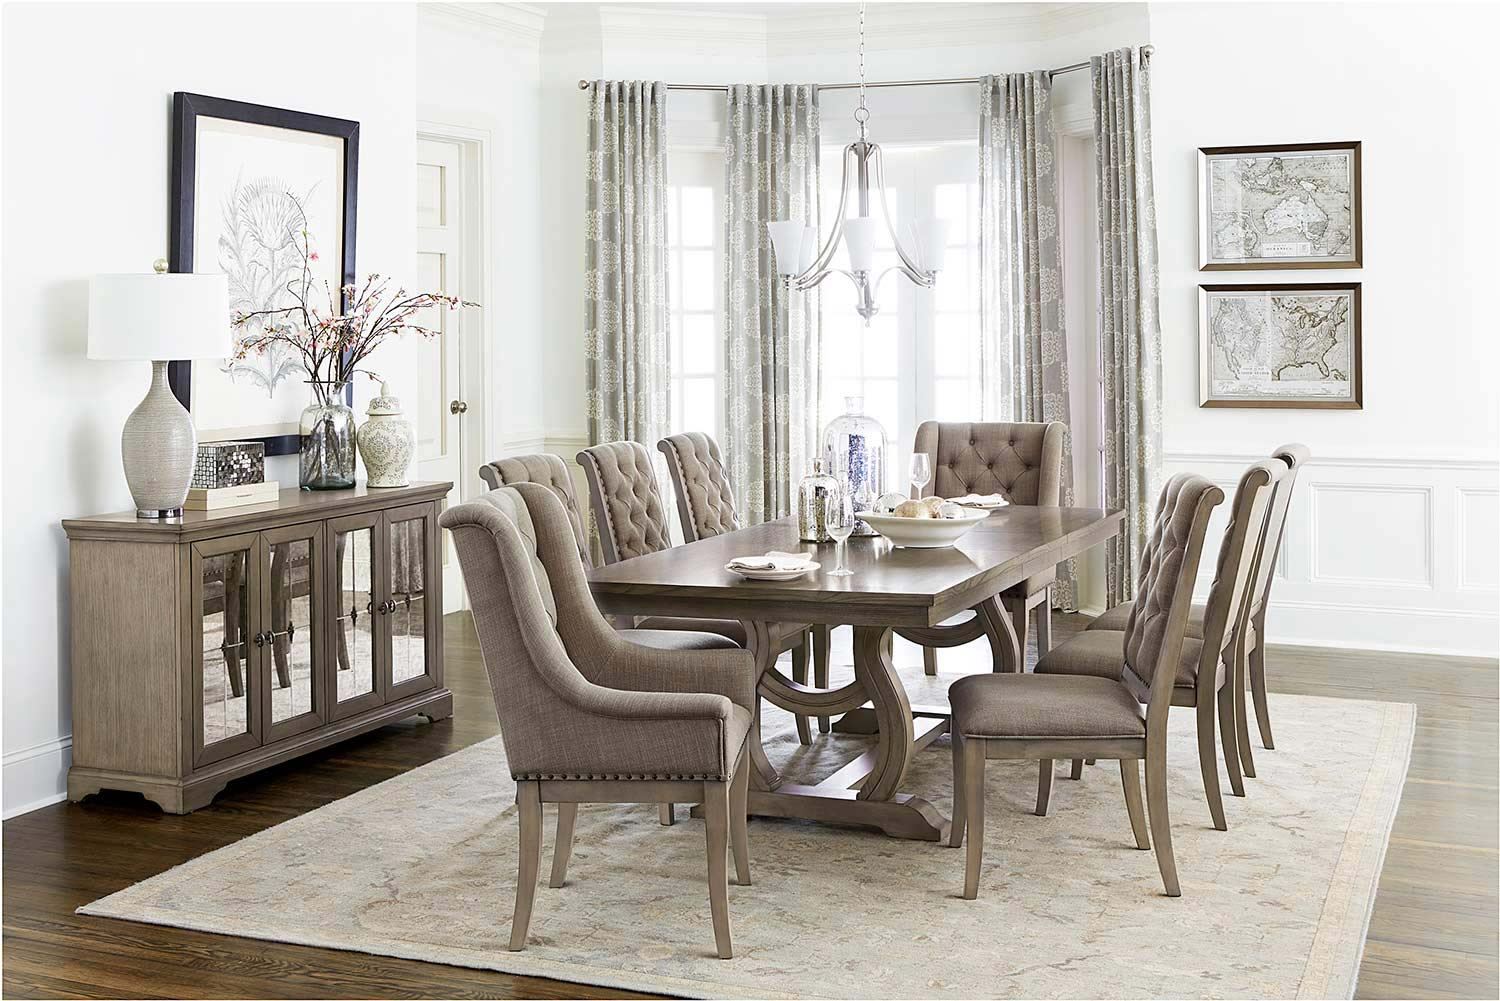 Homelegance Vermillion Dining Set - Bisque